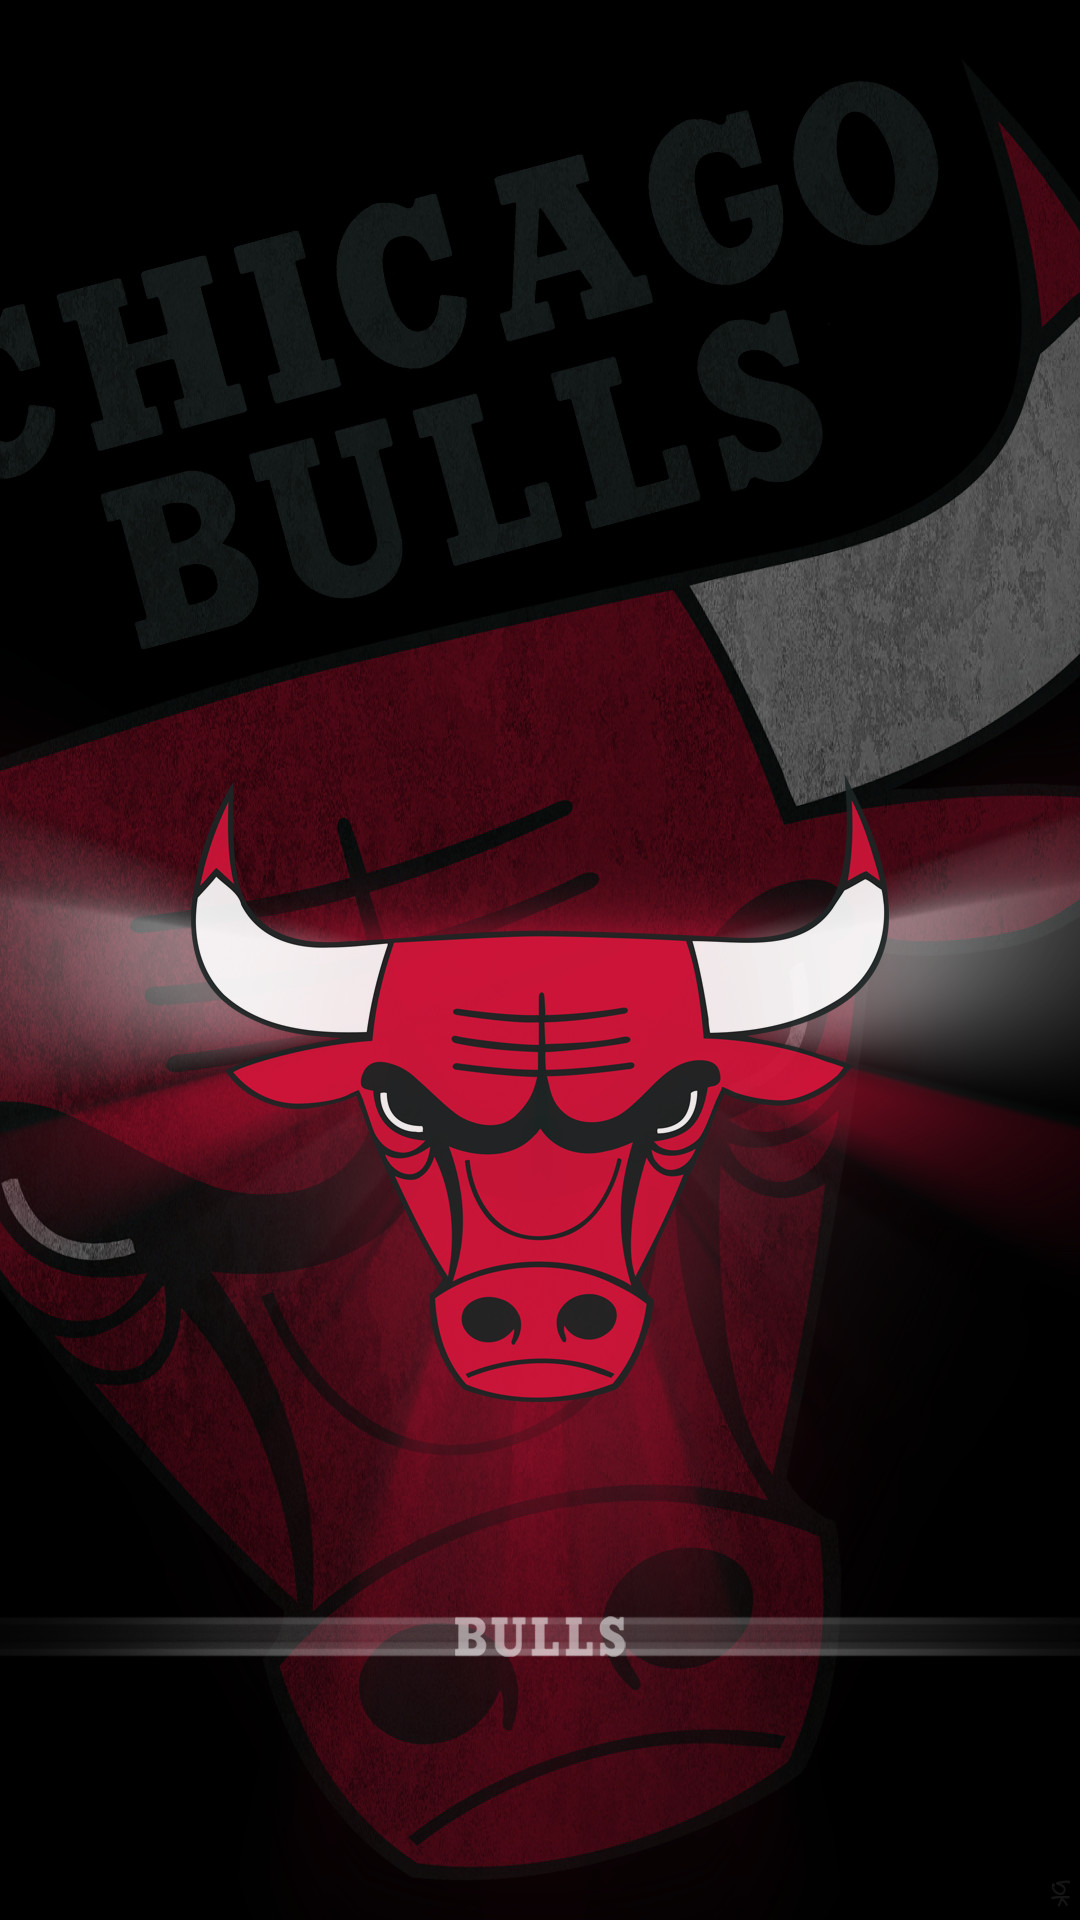 1080x1920 - Chicago Bulls HD 15